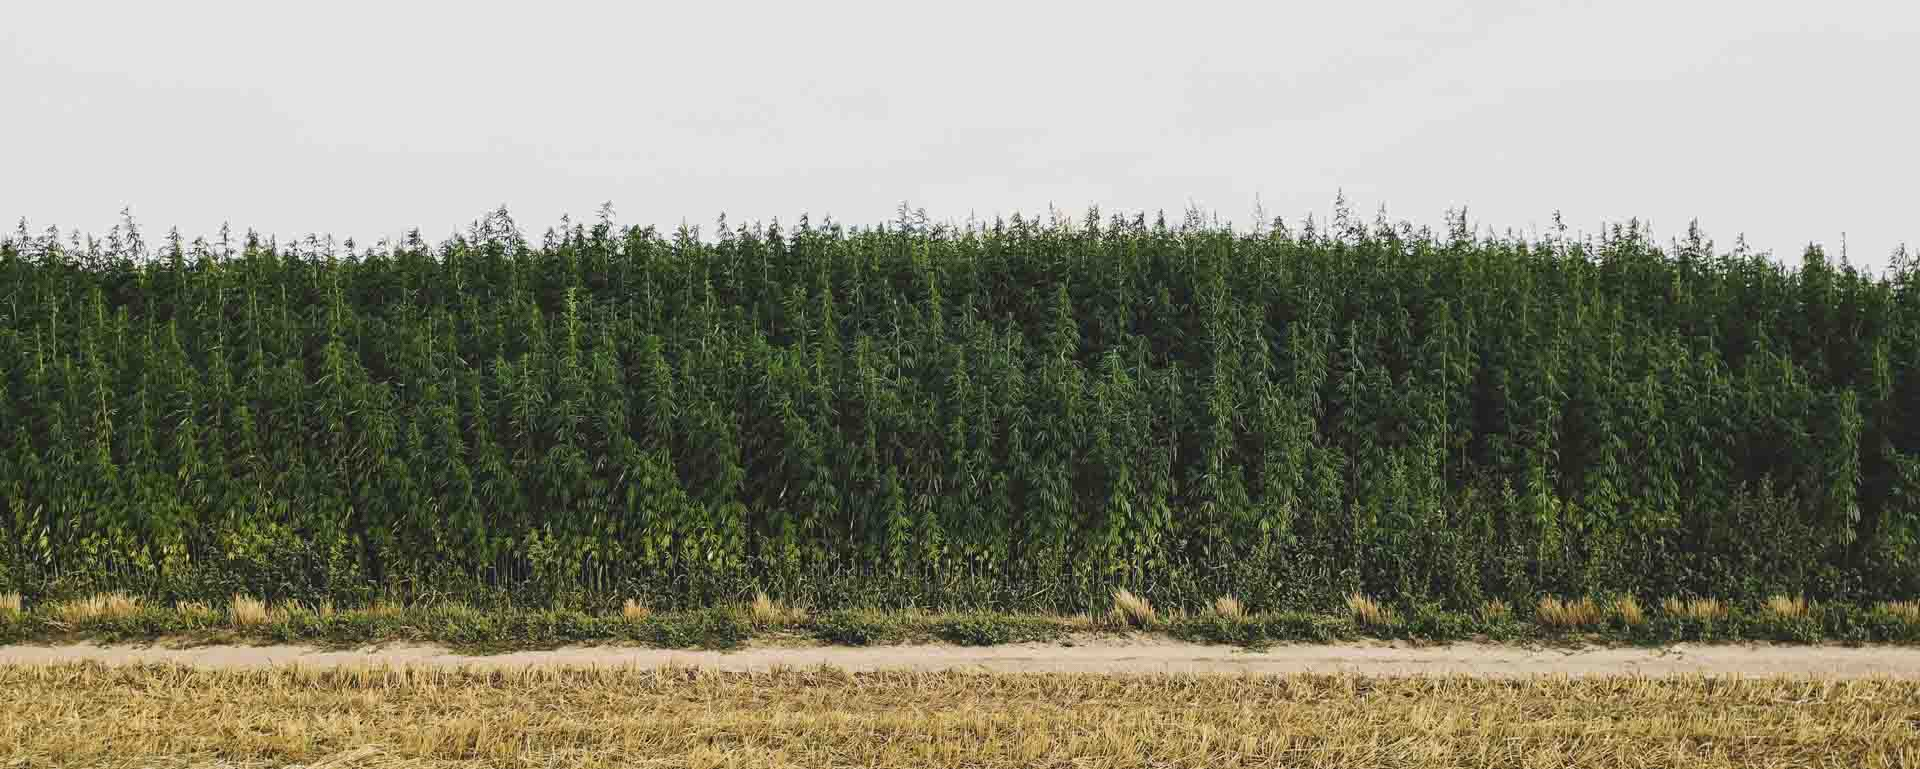 Is growing hemp for CBD legal in the US?